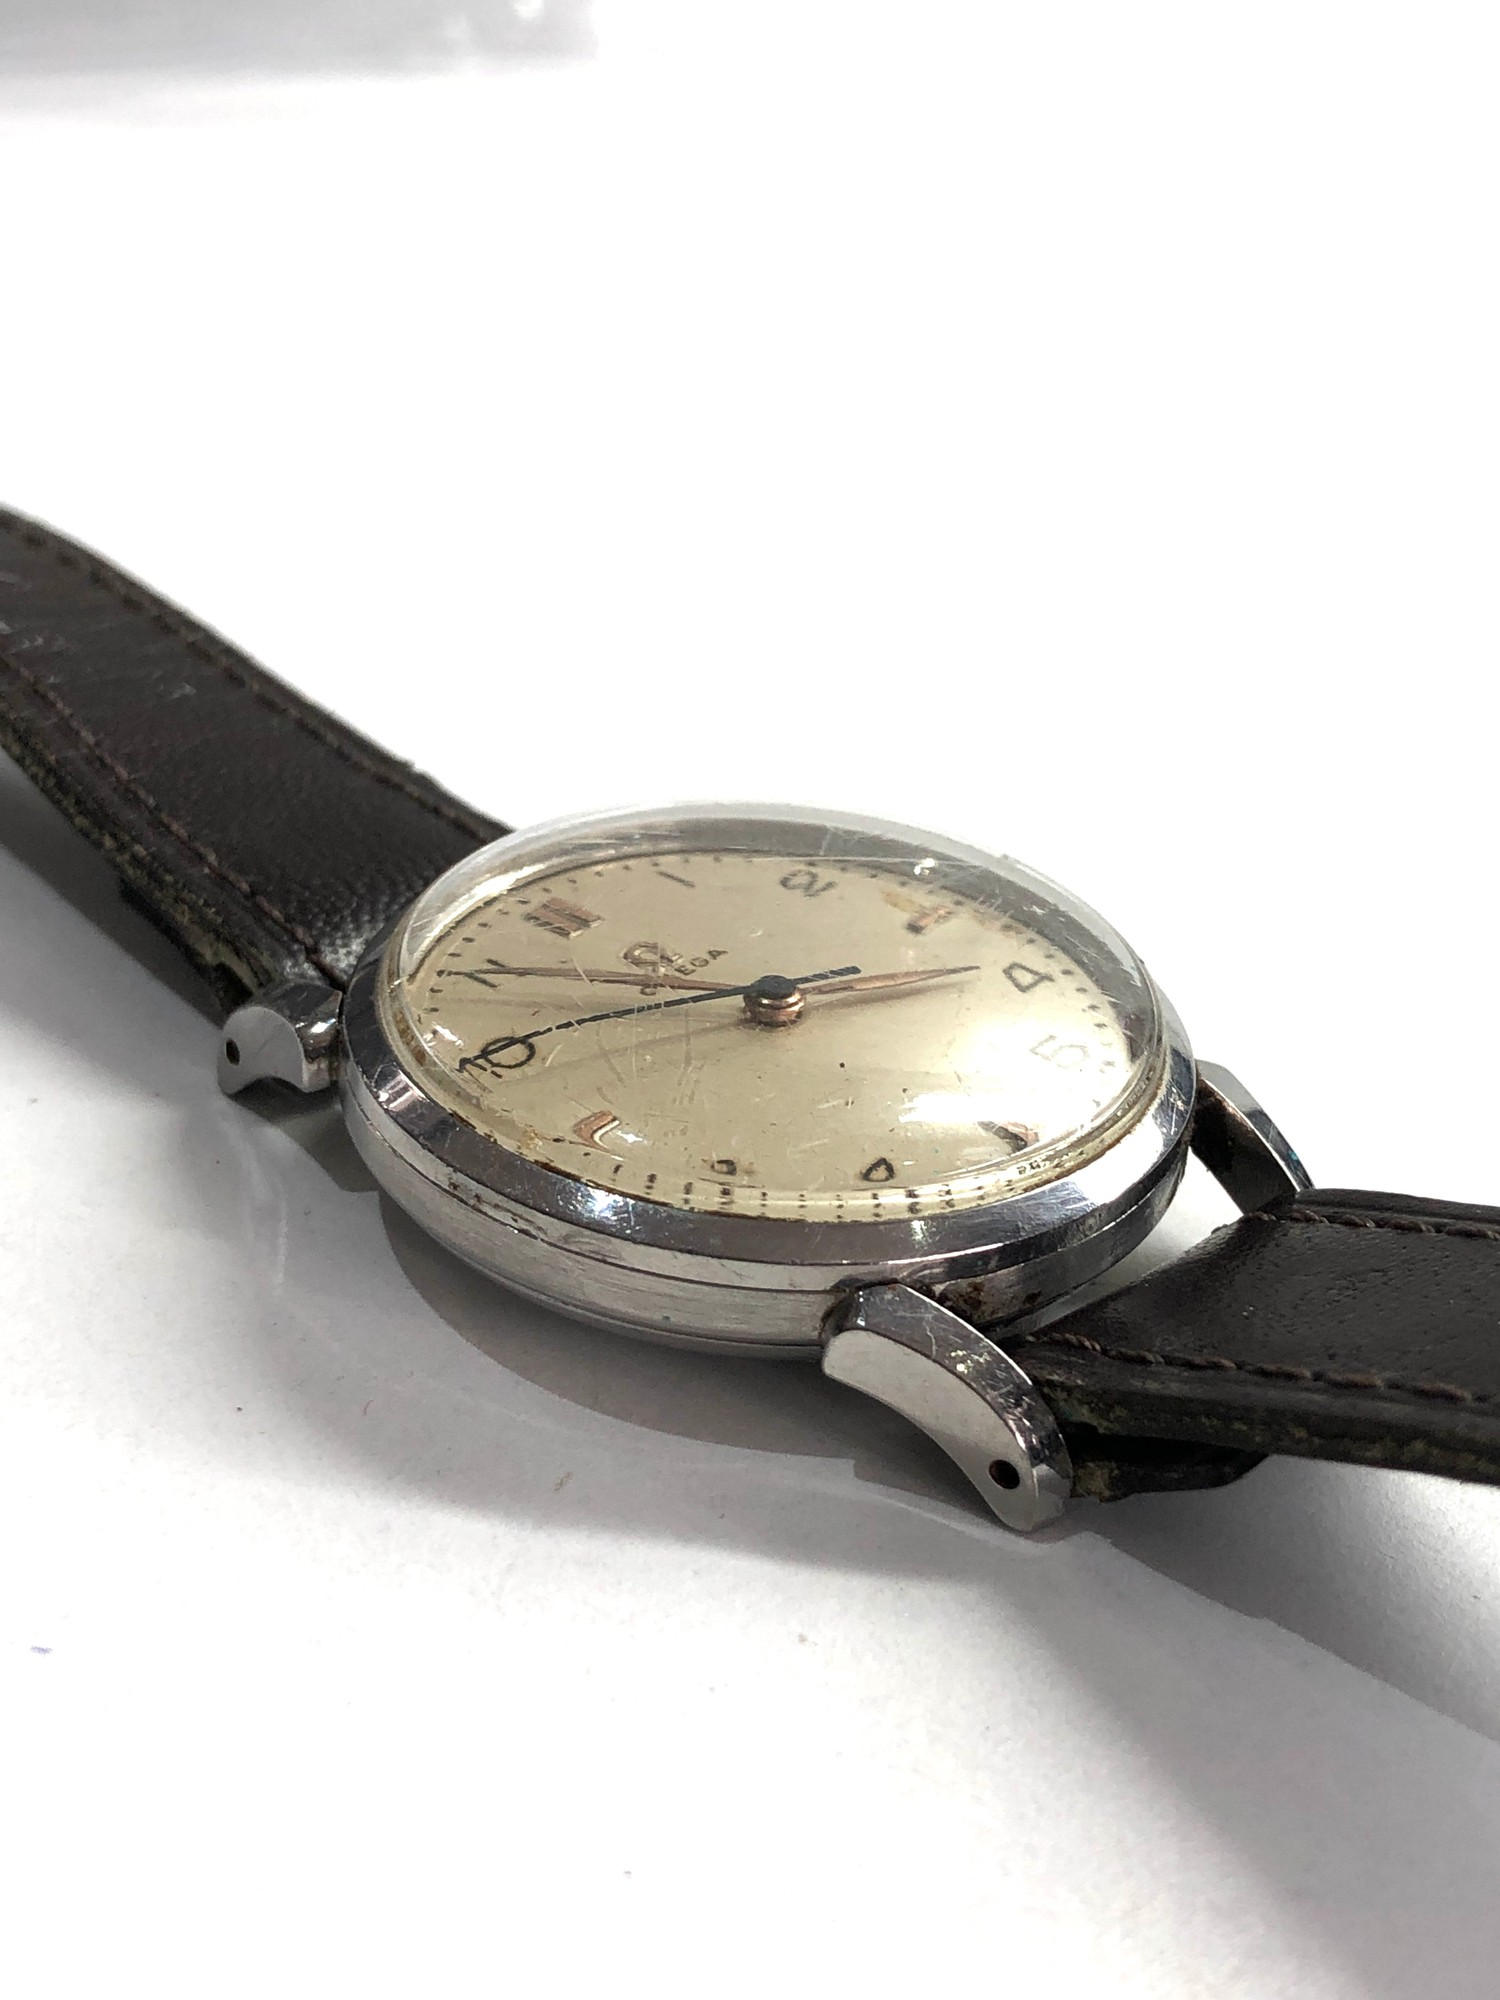 Vintage gents omega wristwatch hand wind in working order but no warranty given - Image 4 of 4